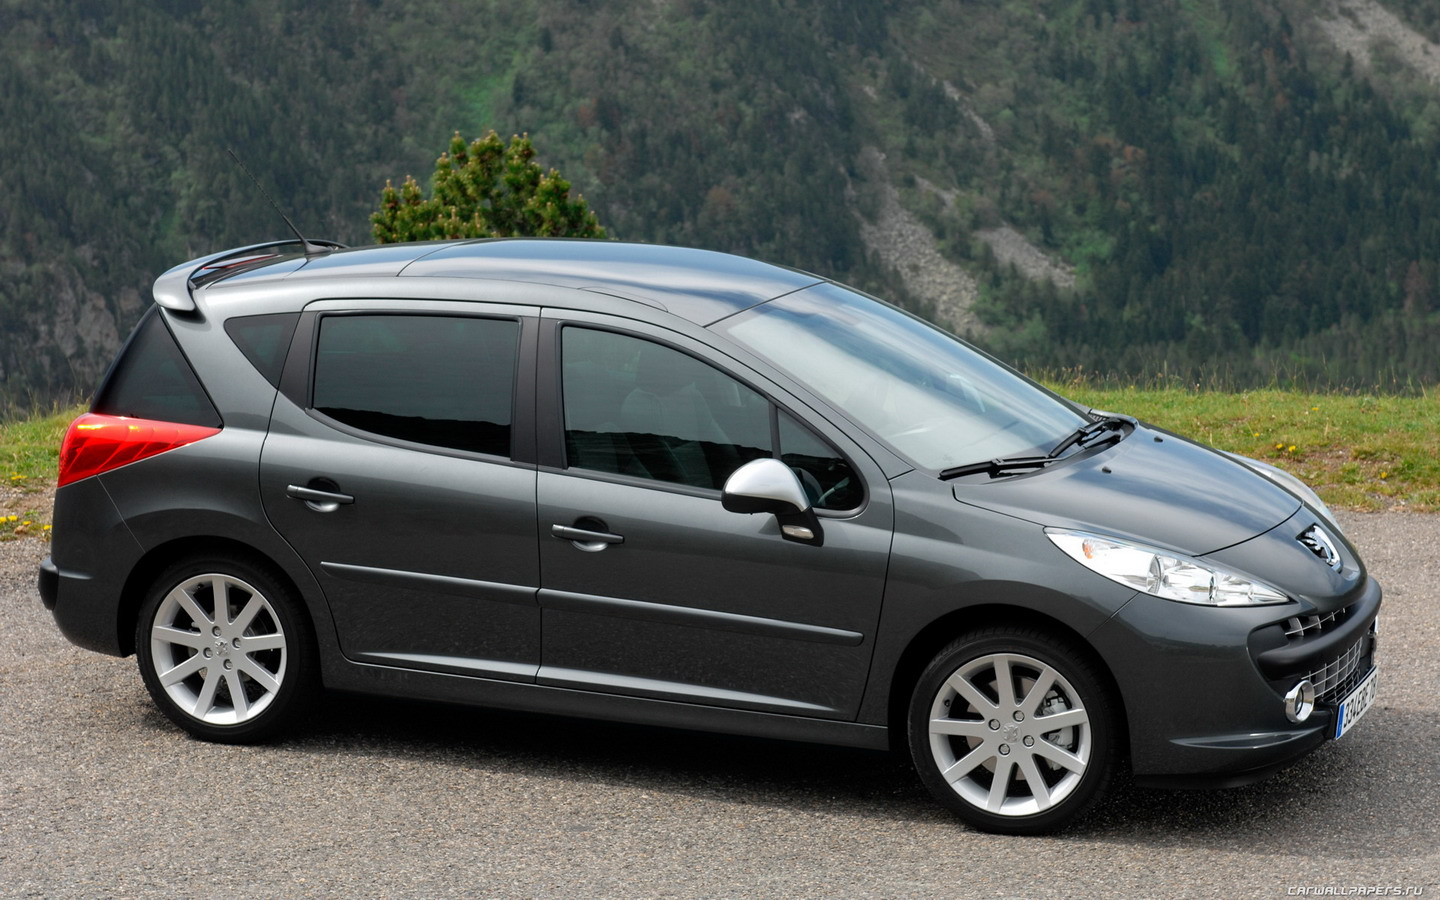 2008 peugeot 207 pictures information and specs auto. Black Bedroom Furniture Sets. Home Design Ideas